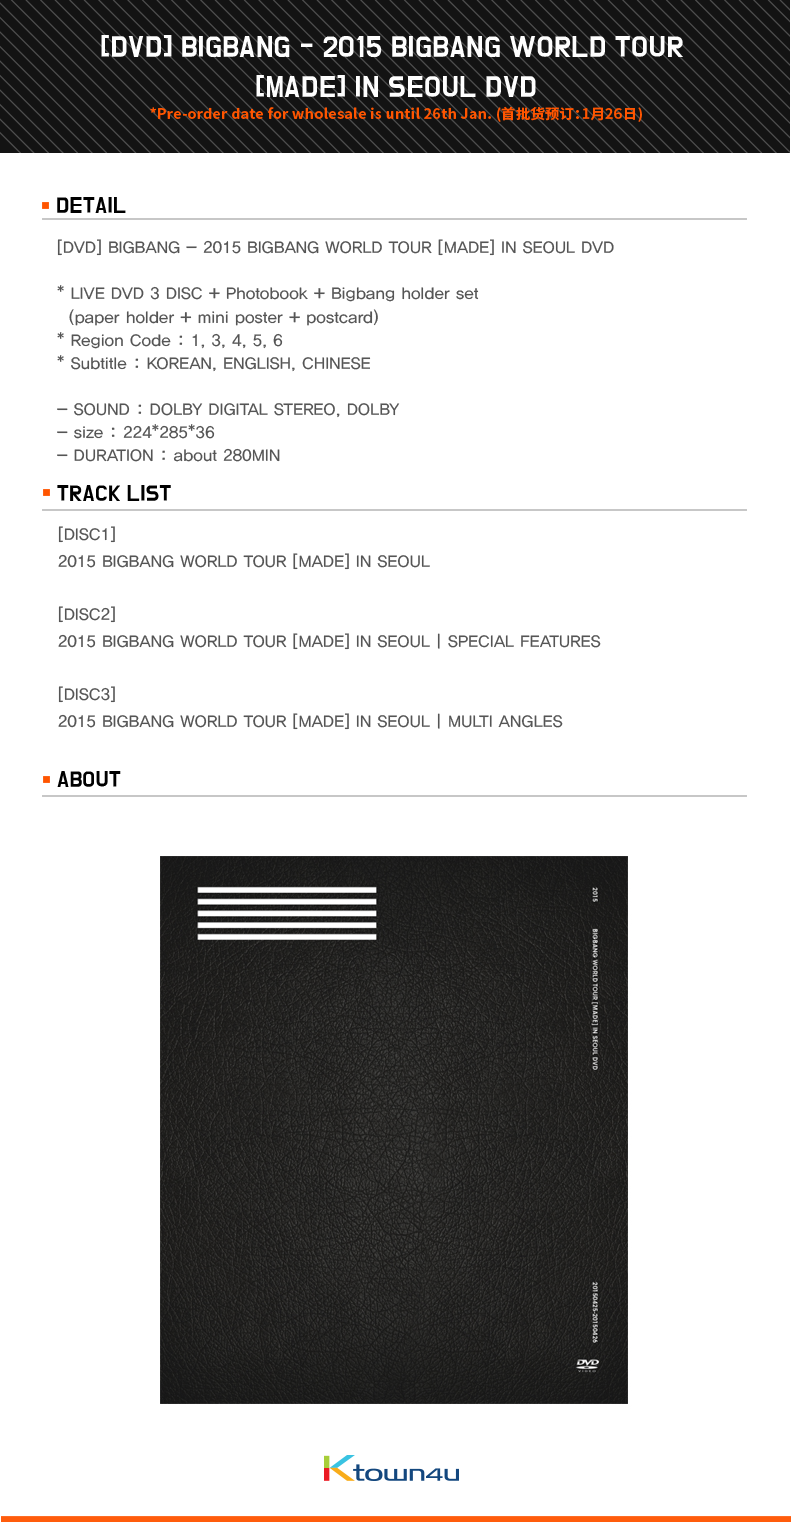 [DVD] BIGBANG(ビッグバン) - 2015 BIGBANG WORLD TOUR [MADE] IN SEOUL DVD